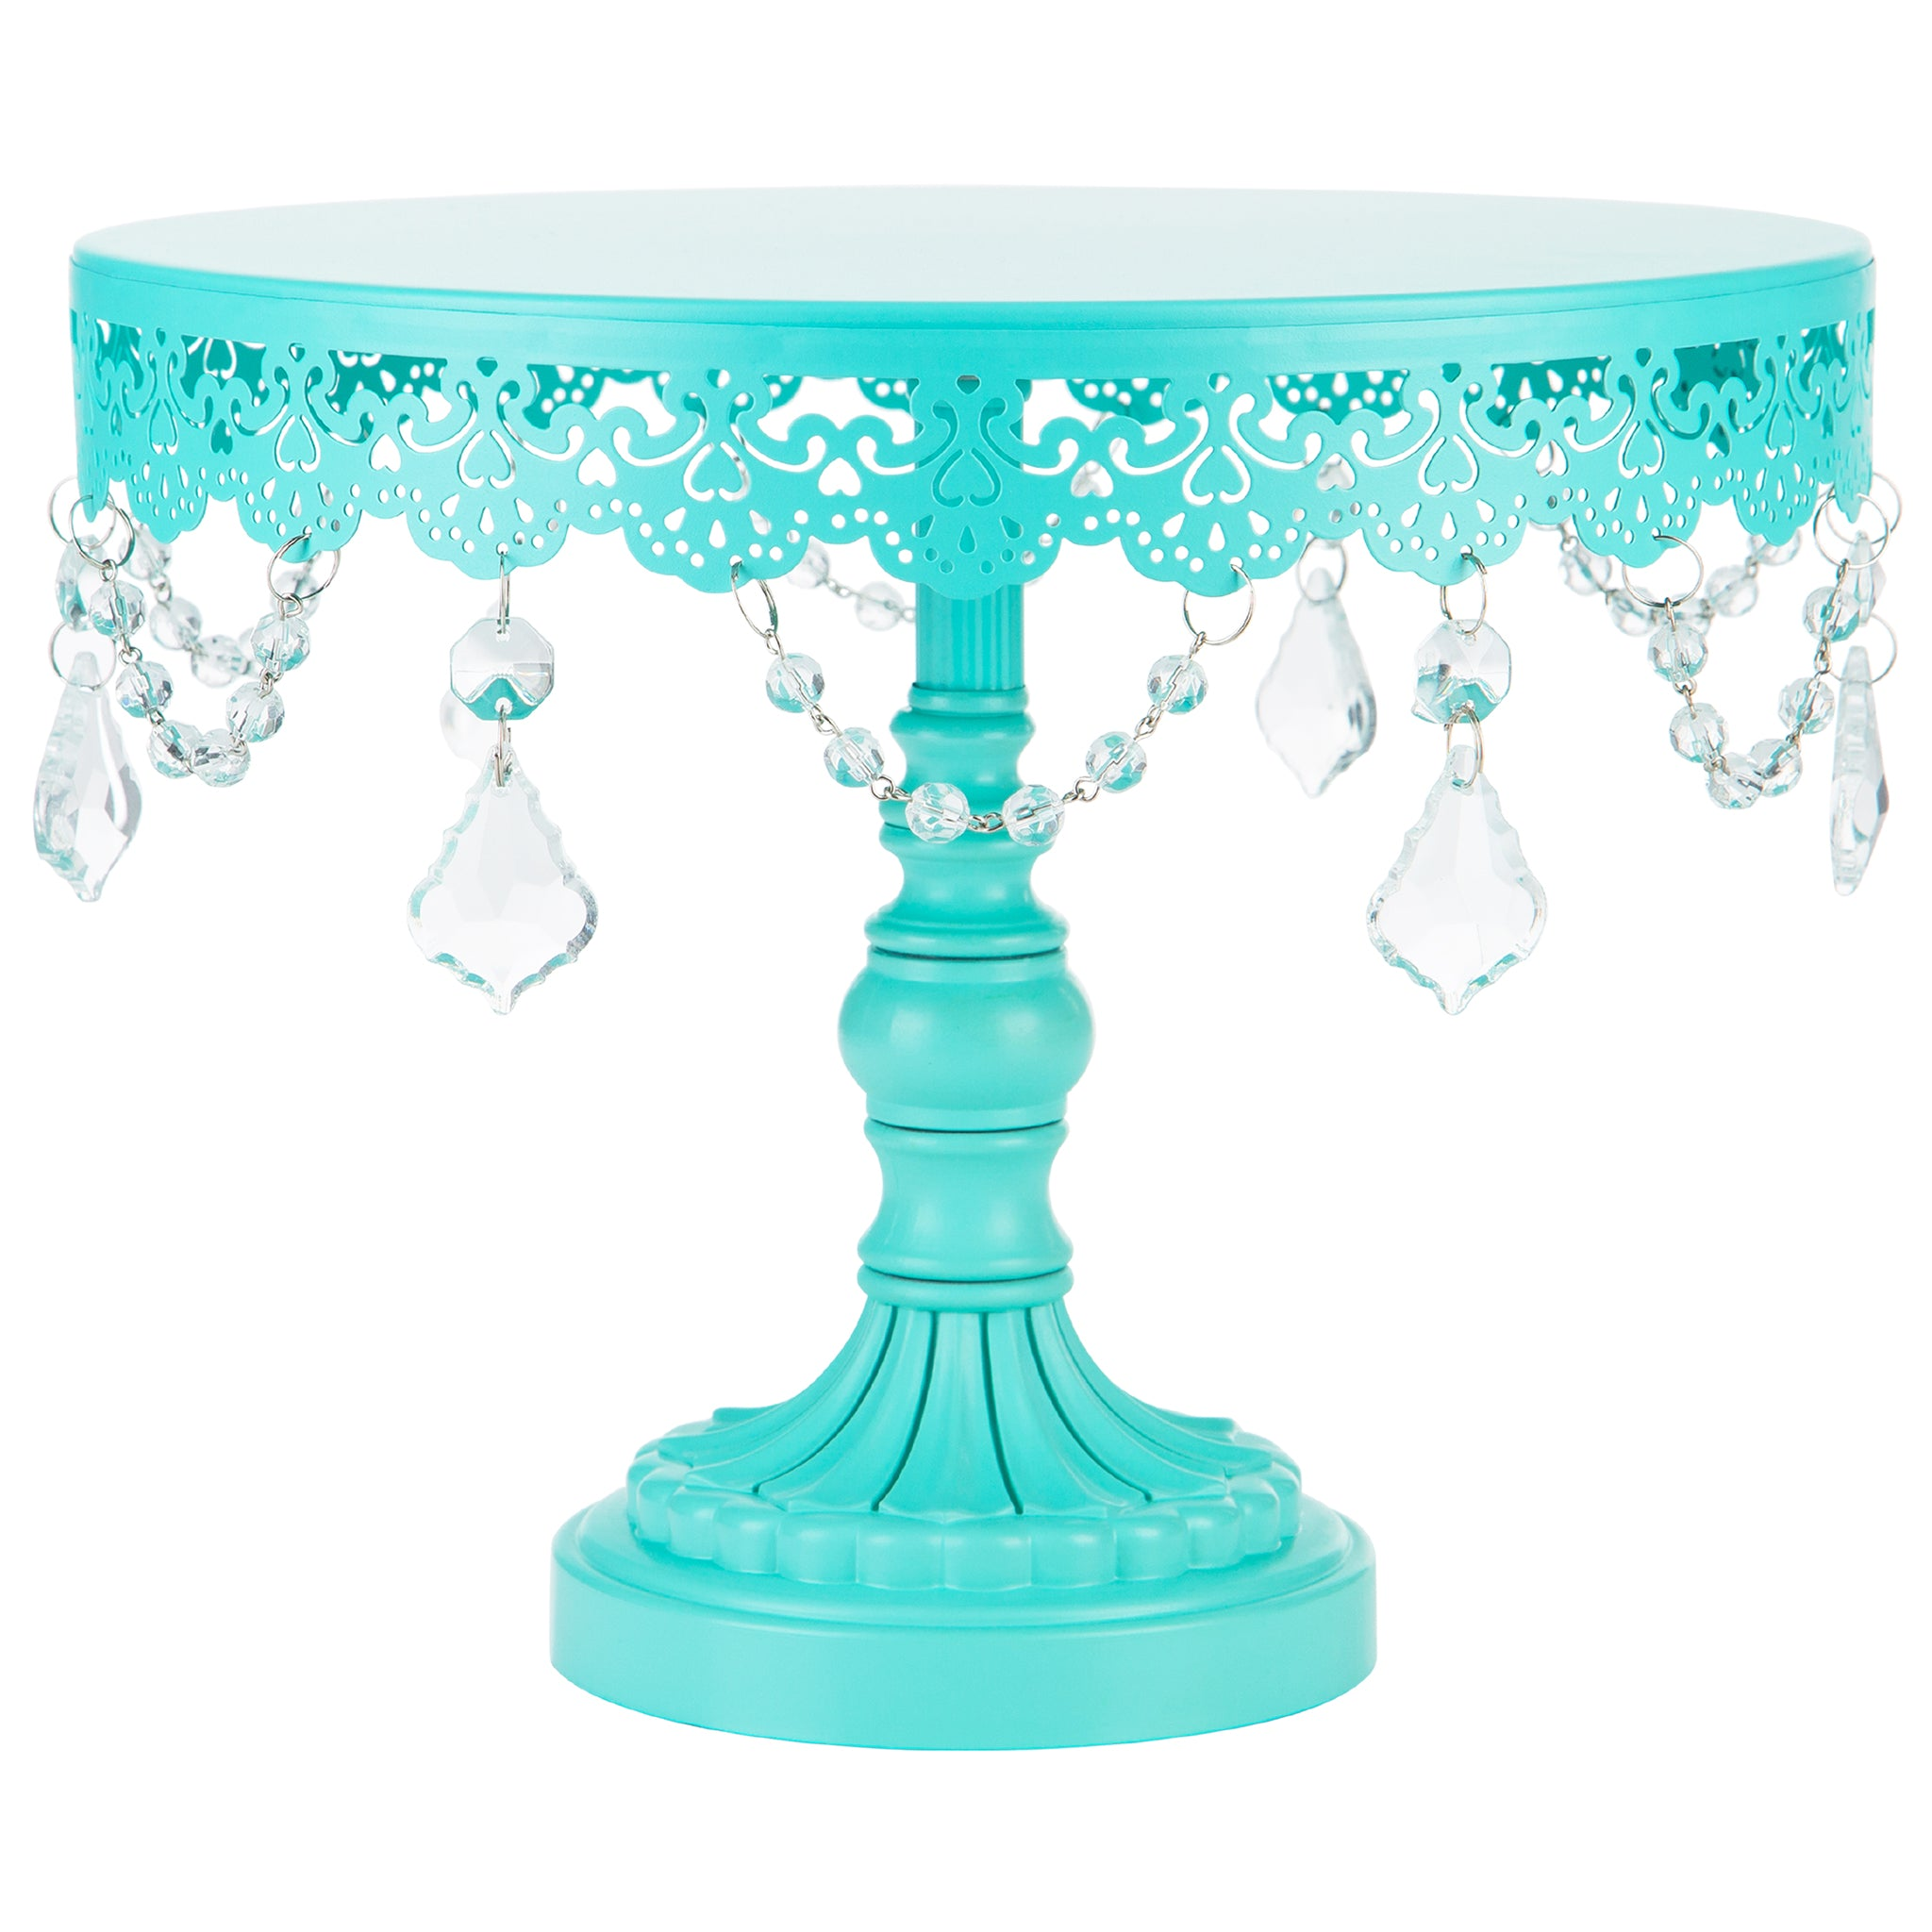 Amalfi Decor 10 Inch Crystal-Draped Round Metal Cake Stand (Teal) | Stainless Steel Frame